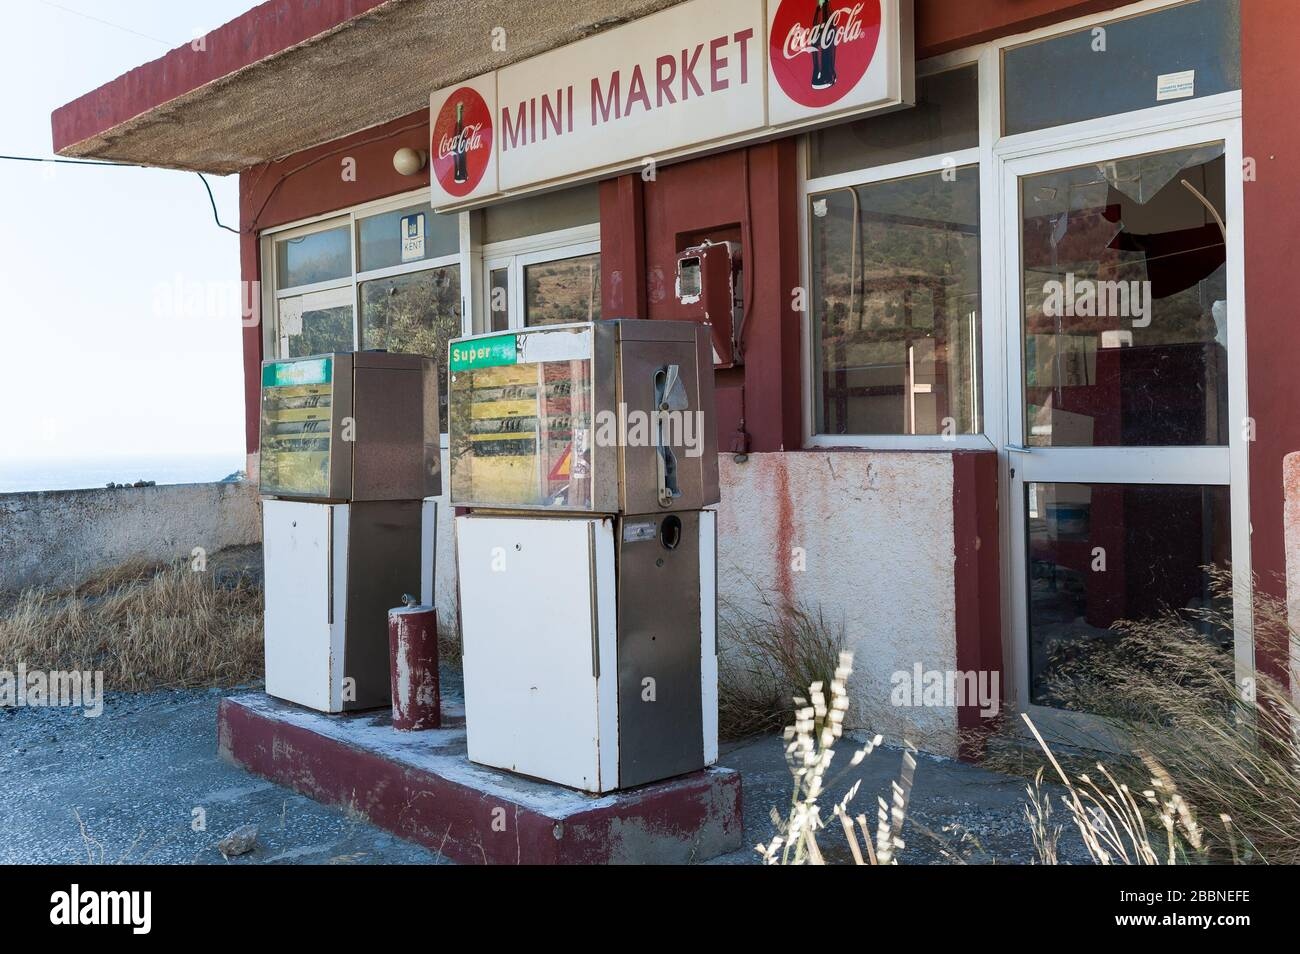 Petrol Gas Station Greece High Resolution Stock Photography And Images Alamy